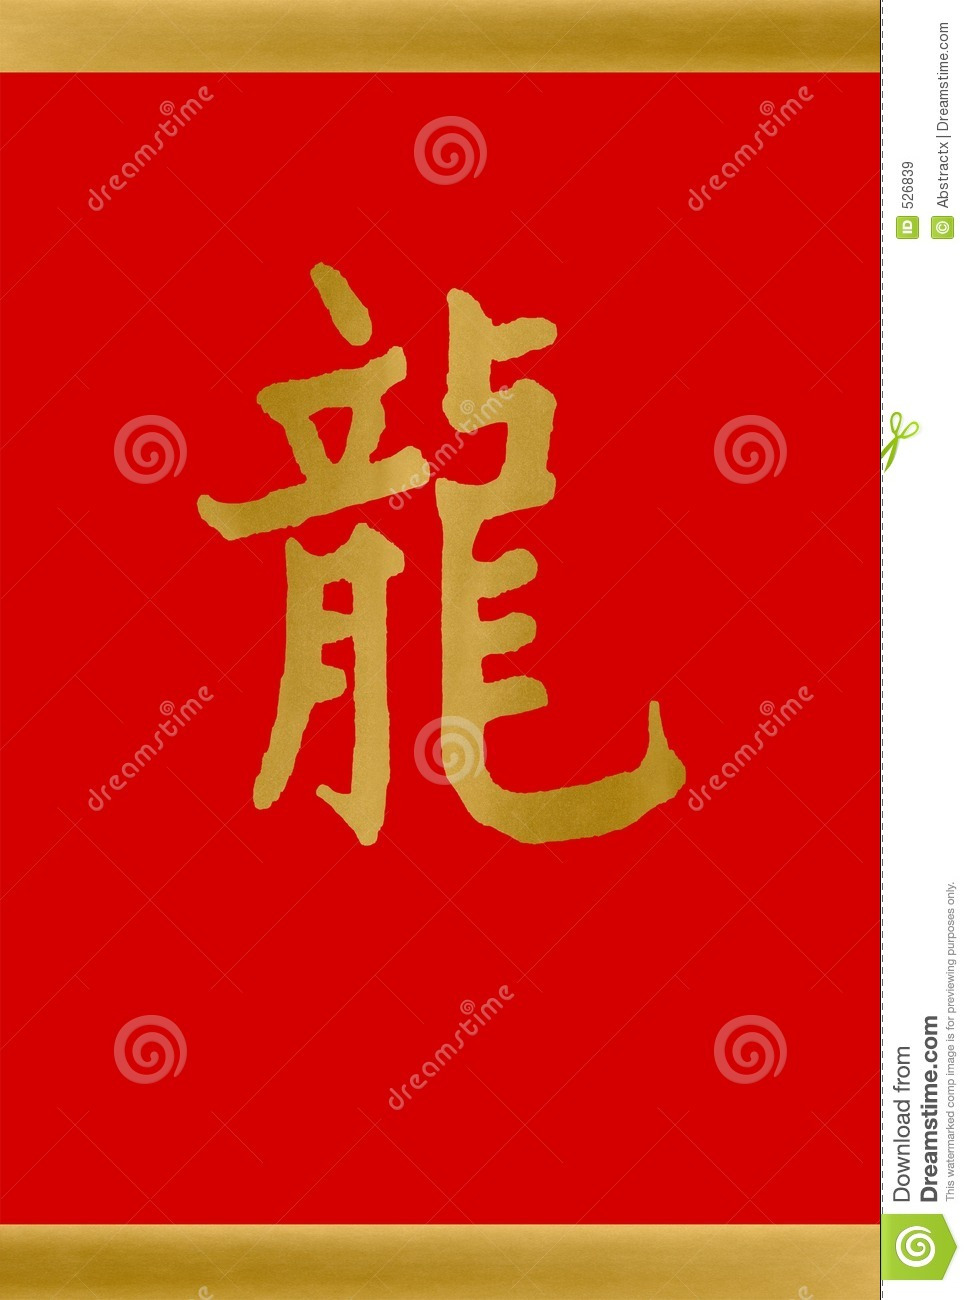 chinese horoscope year of the dragon royalty free stock images image 526839. Black Bedroom Furniture Sets. Home Design Ideas